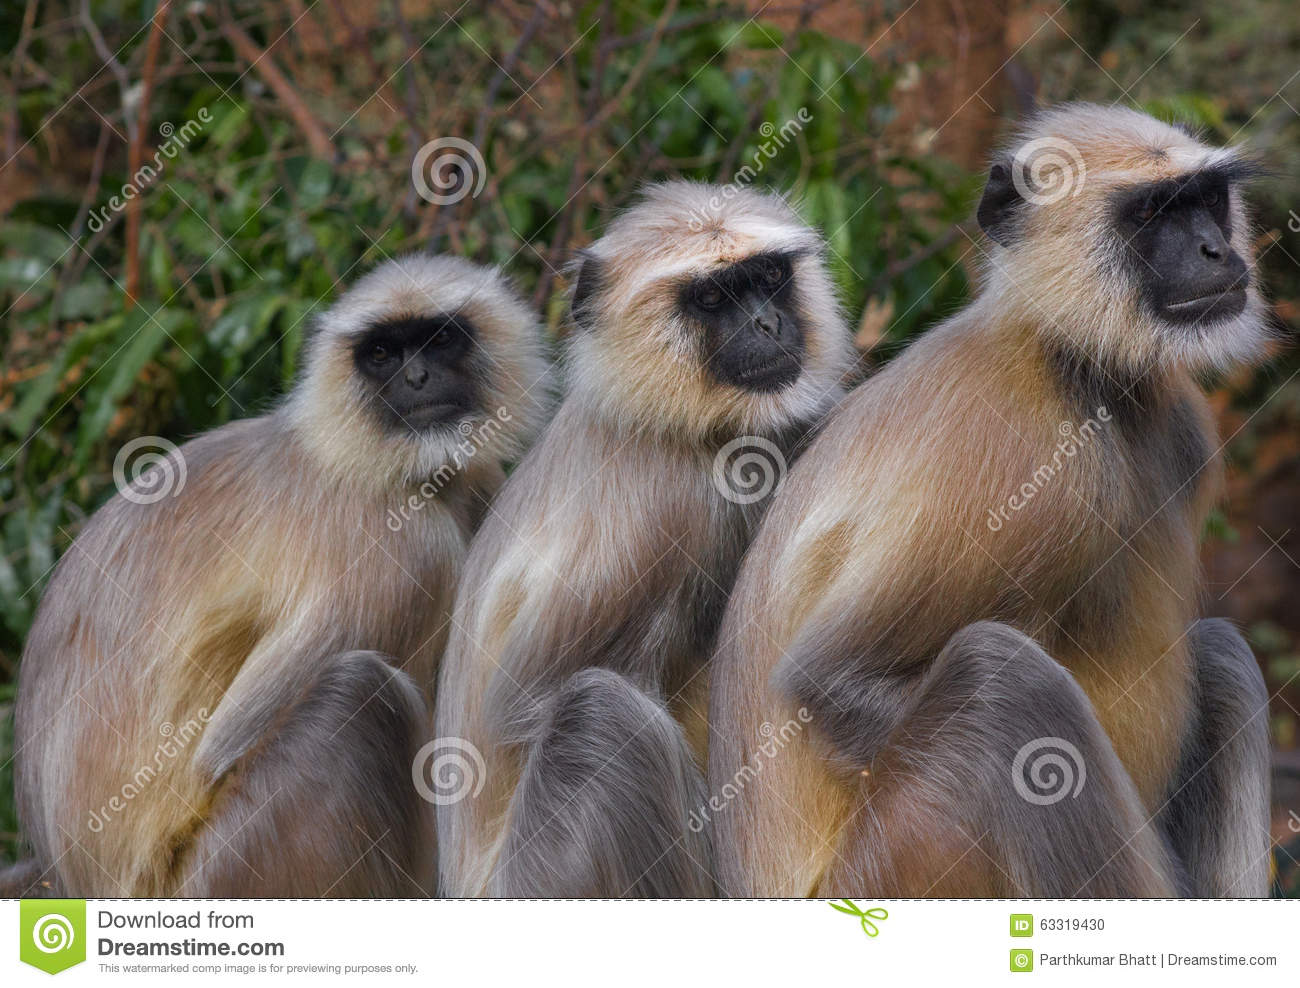 three monkeys images  Three Monkeys Stock Images - Download 740 Photos